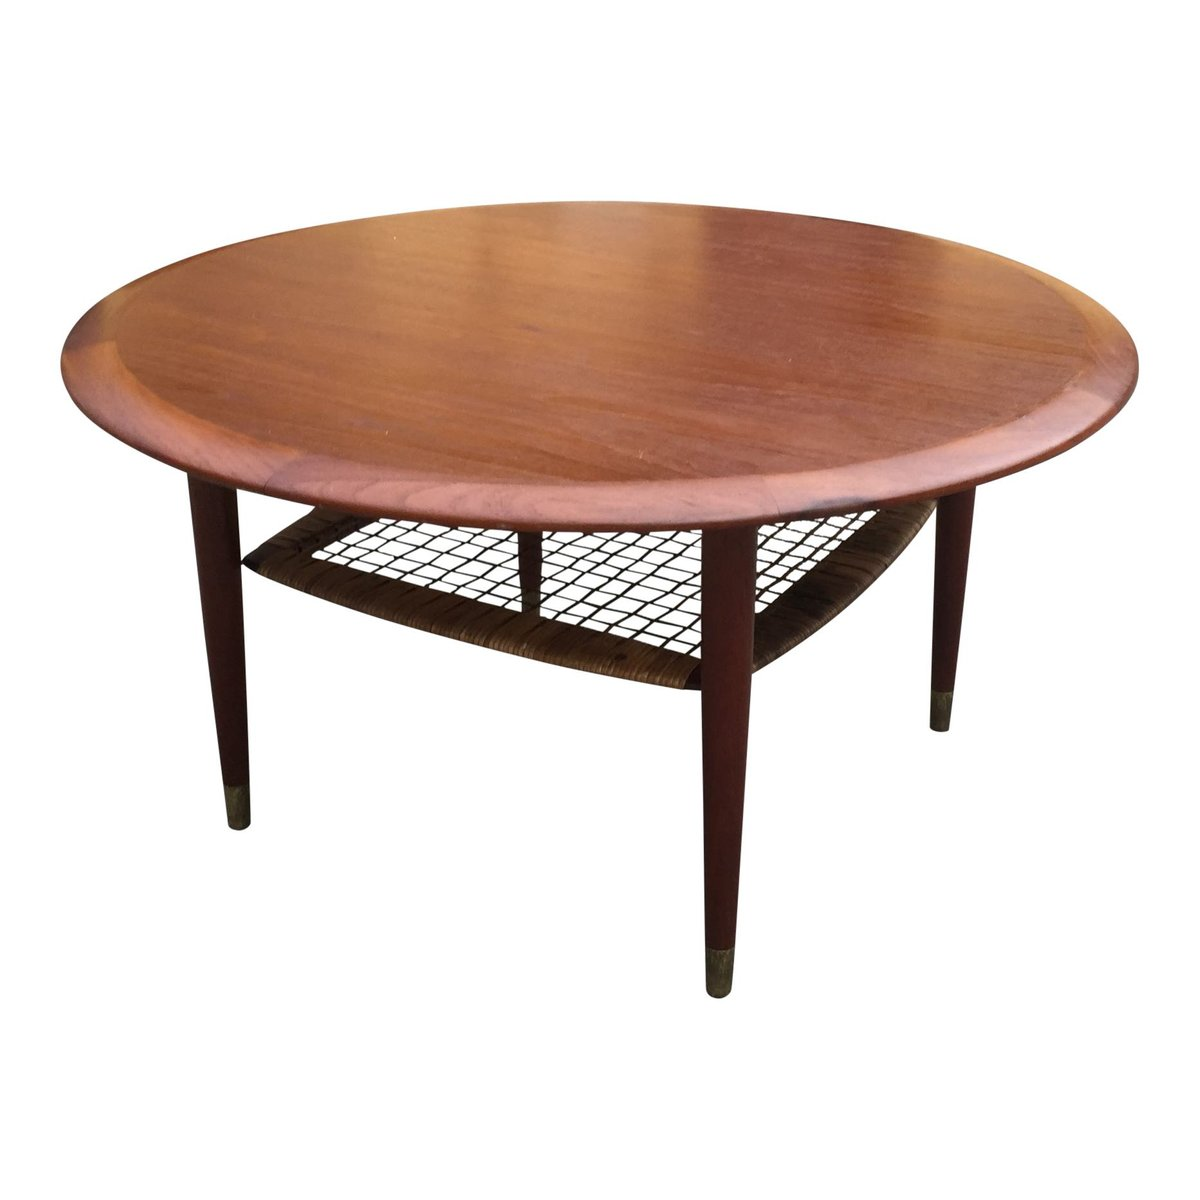 Antique Teak Coffee Table: Vintage Danish Round Teak Coffee Table With Shelf For Sale